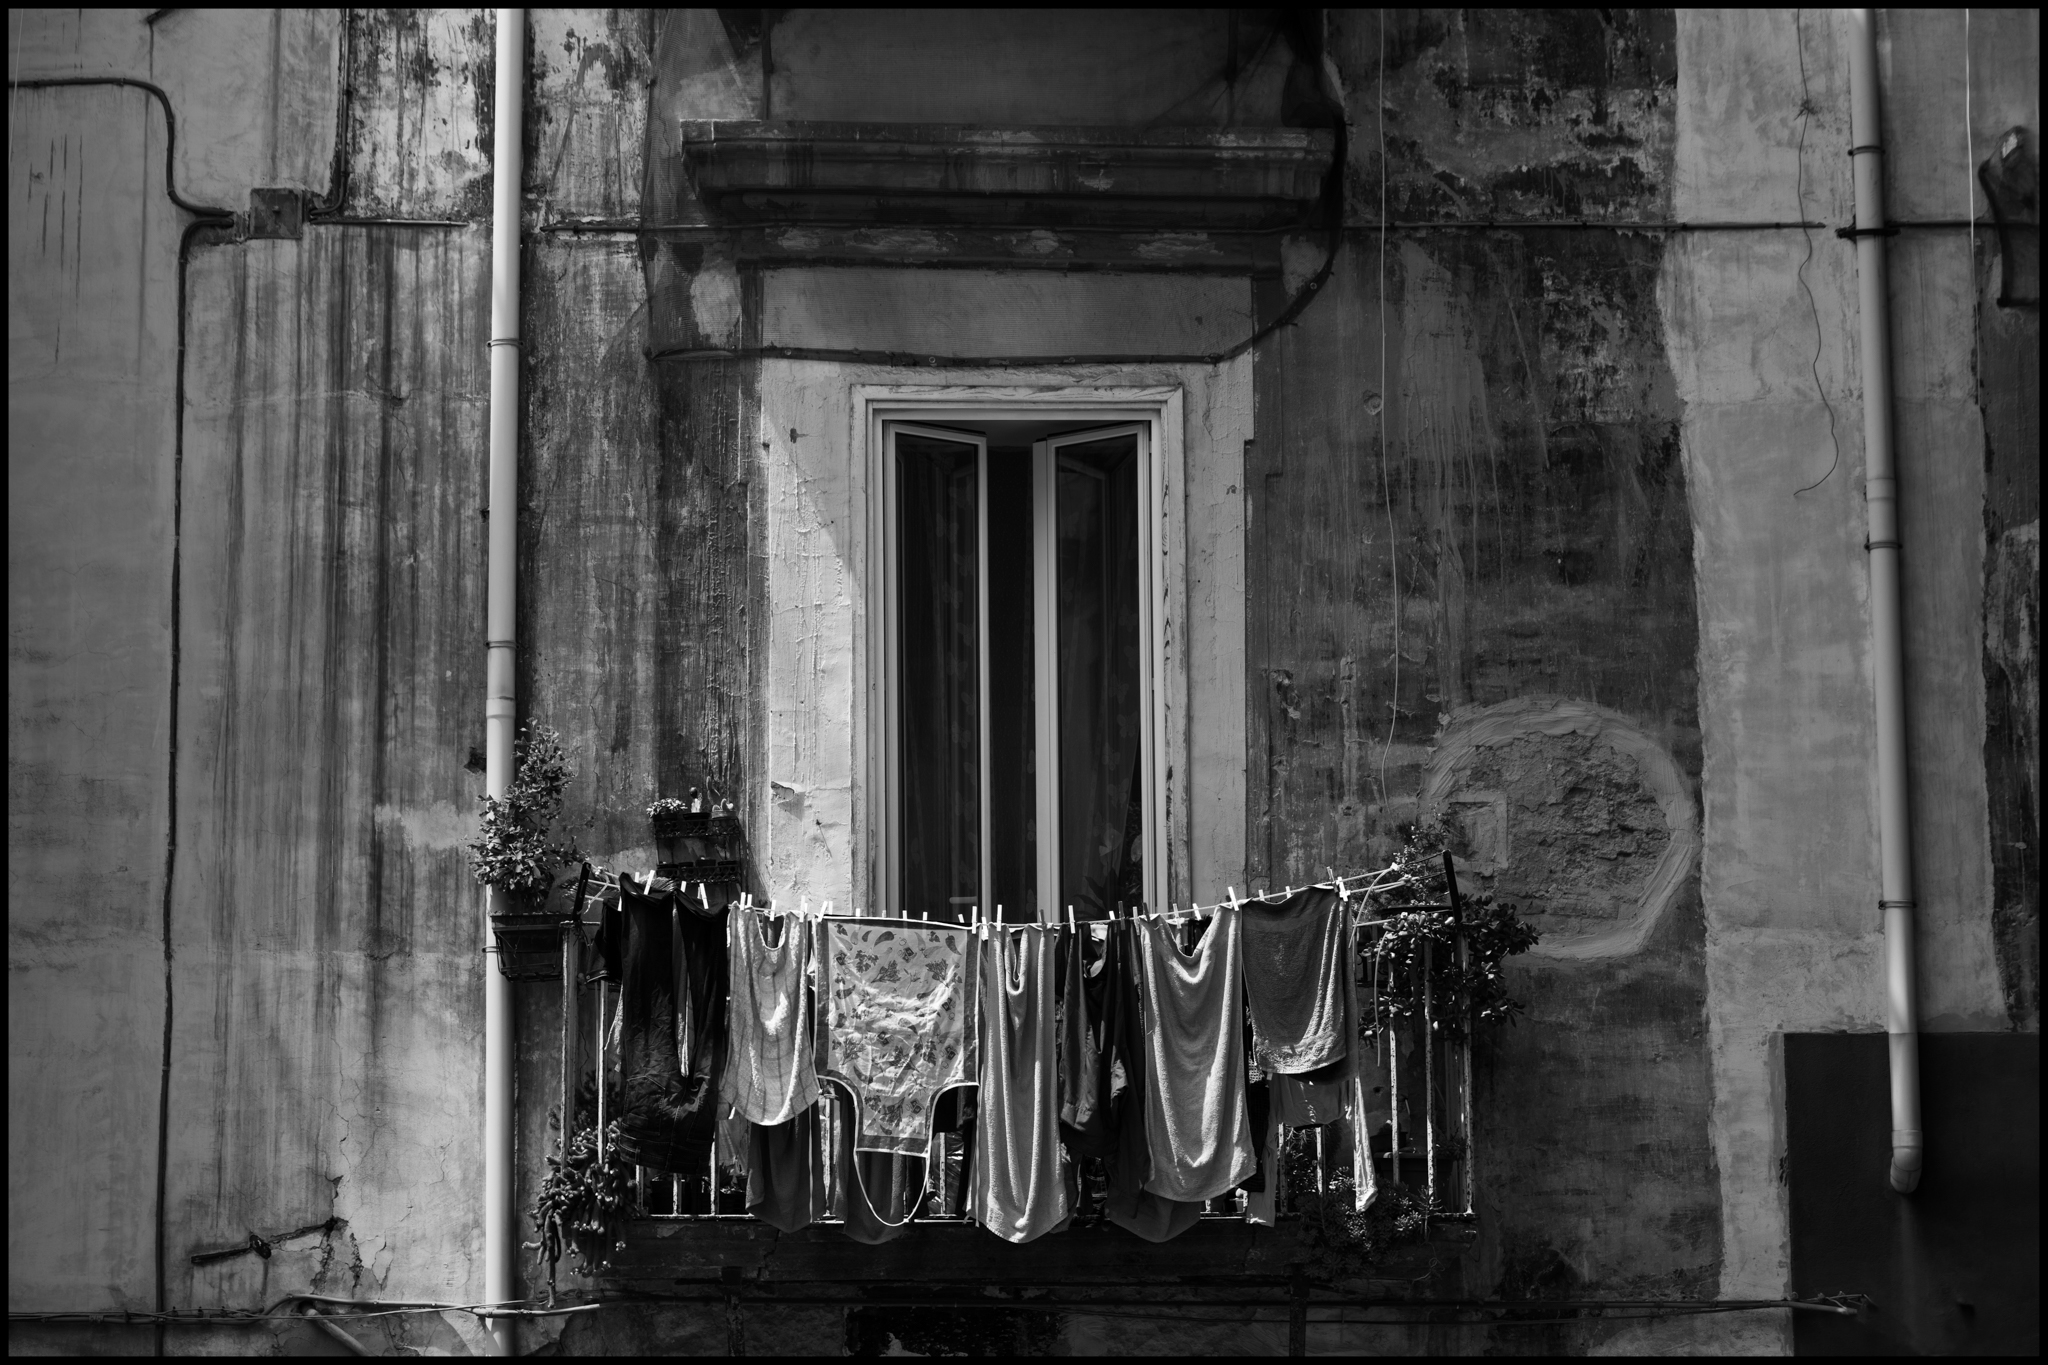 11 June 2019 - Window and washing, Naples IT